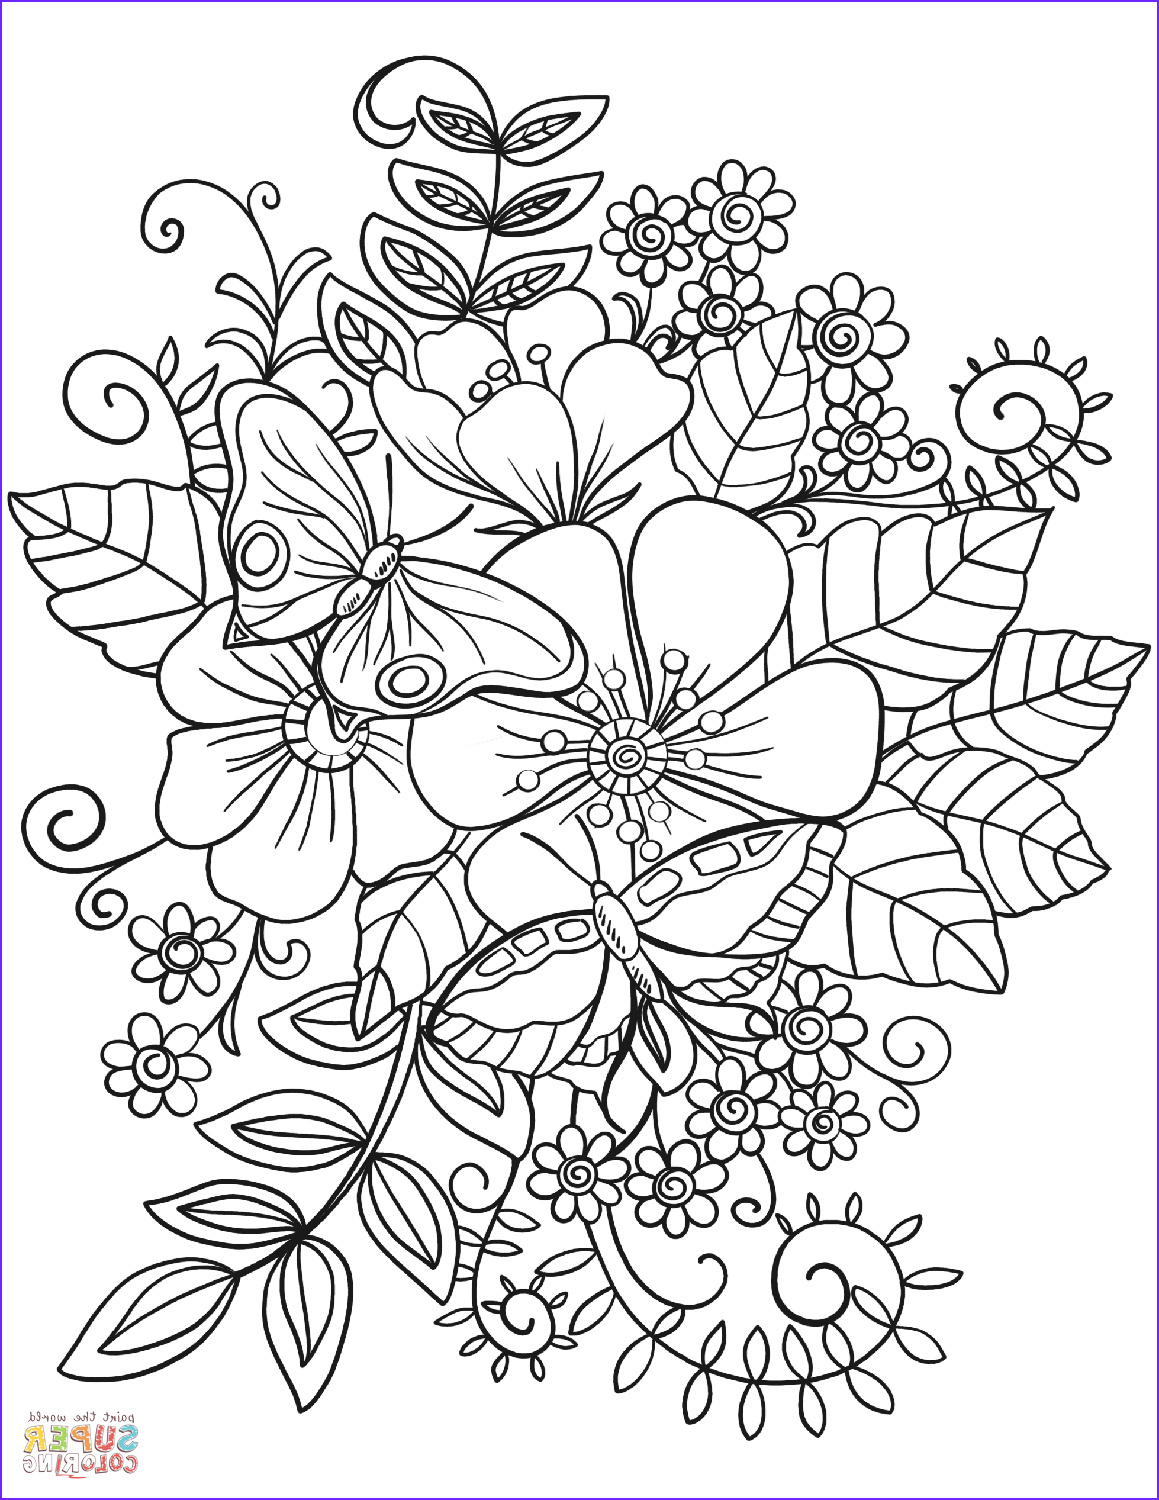 Flower Coloring Pages for Adults Elegant Gallery butterflies On Flowers Coloring Page